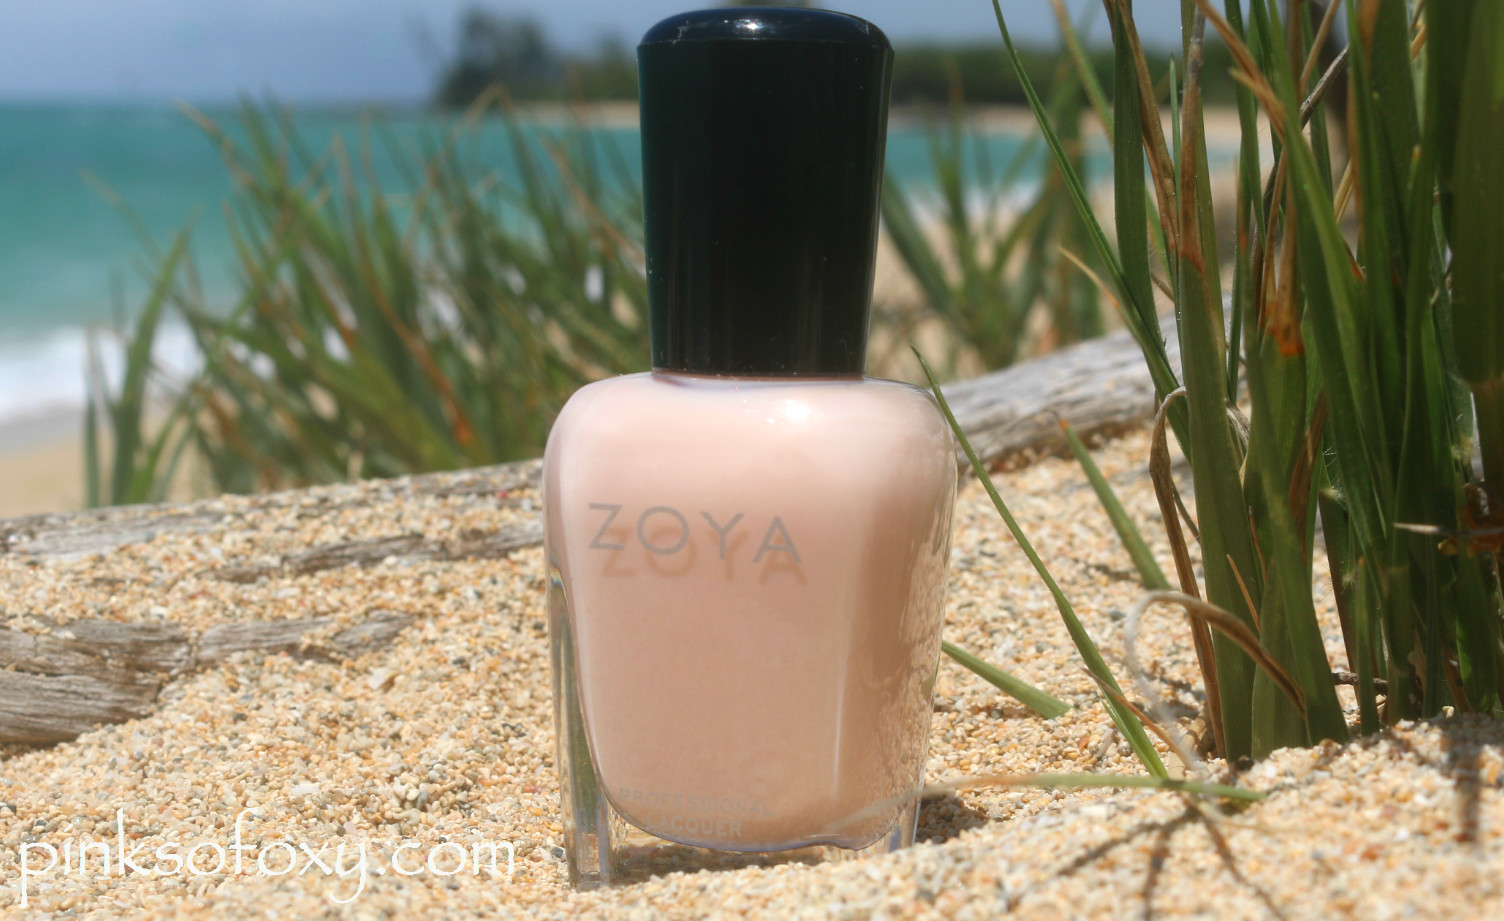 Zoya Laurie French Manicure